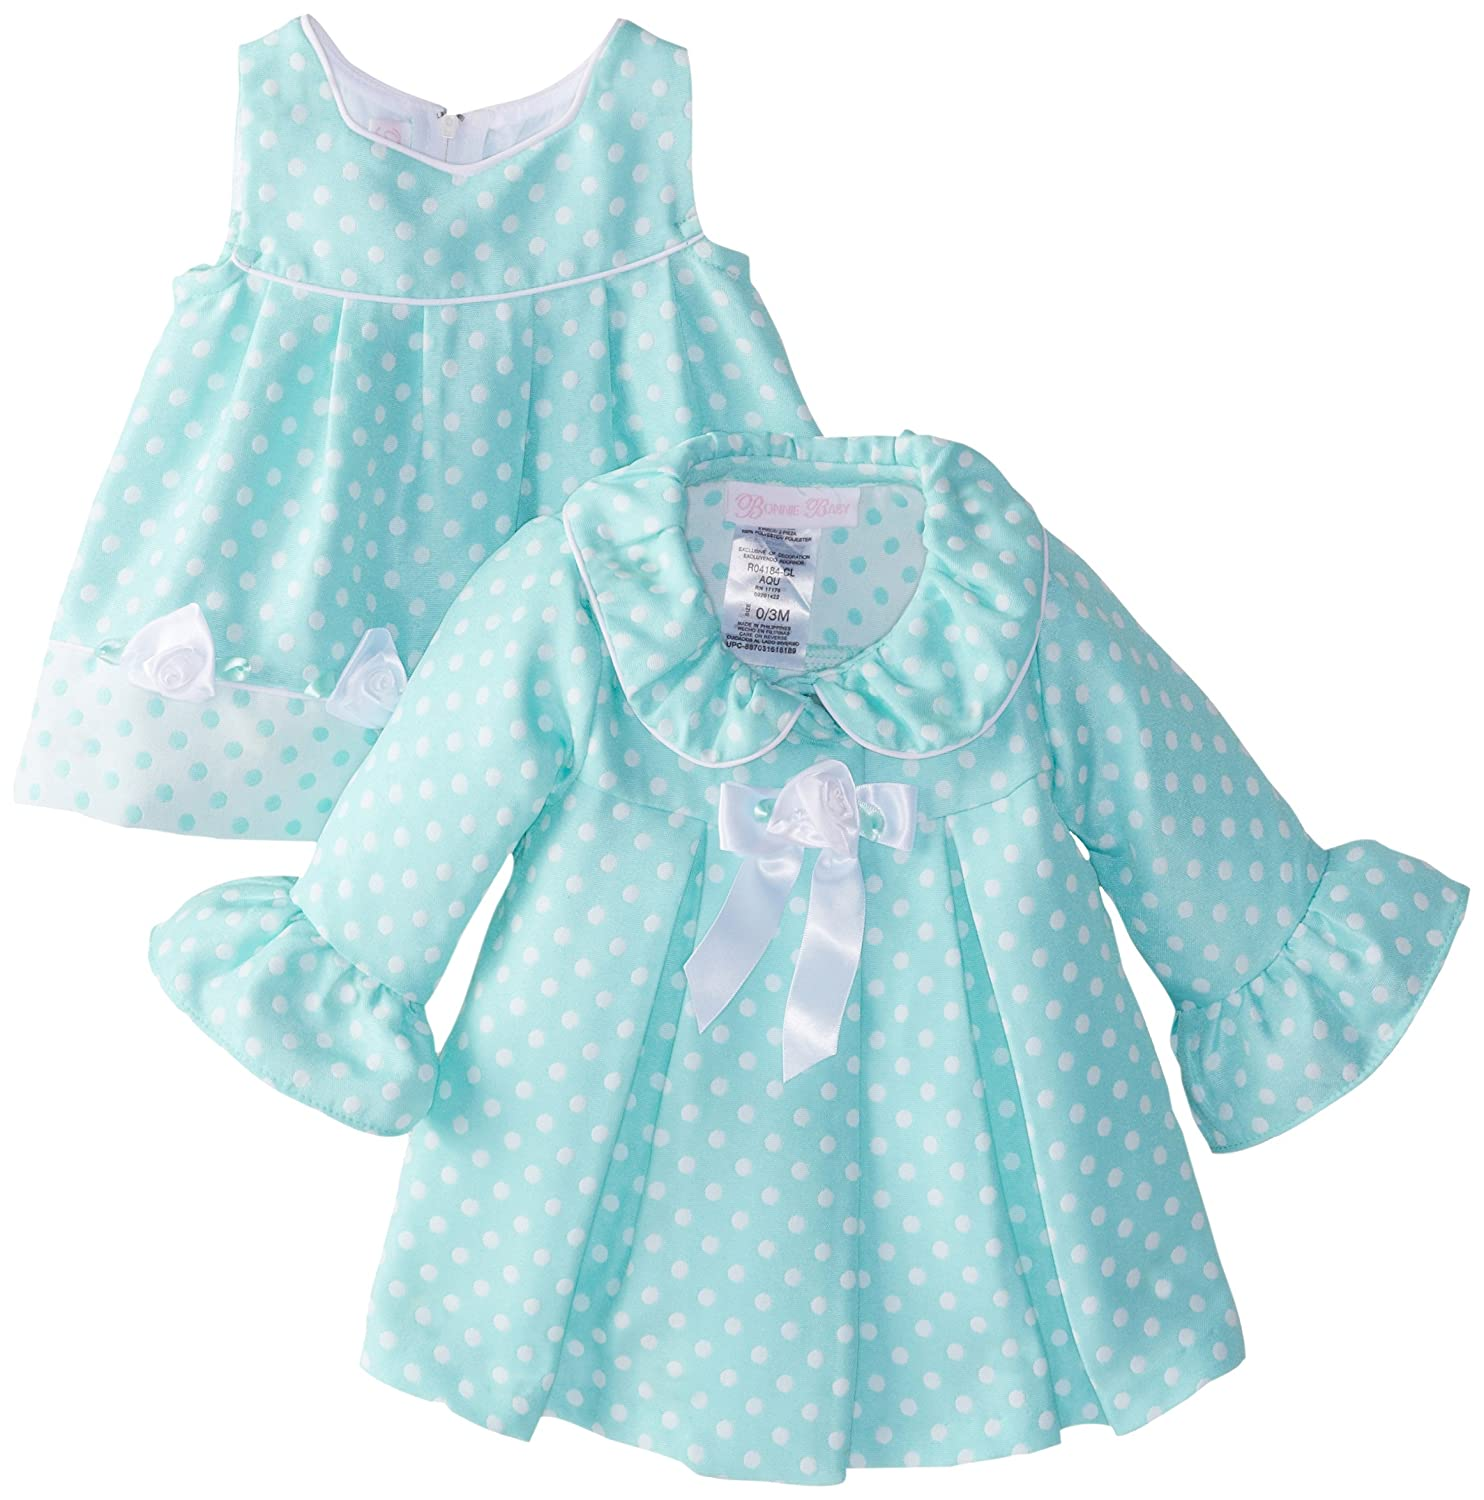 Amazon Bonnie Baby Girls Newborn Aqua Dot Coat And Dress Set Clothing